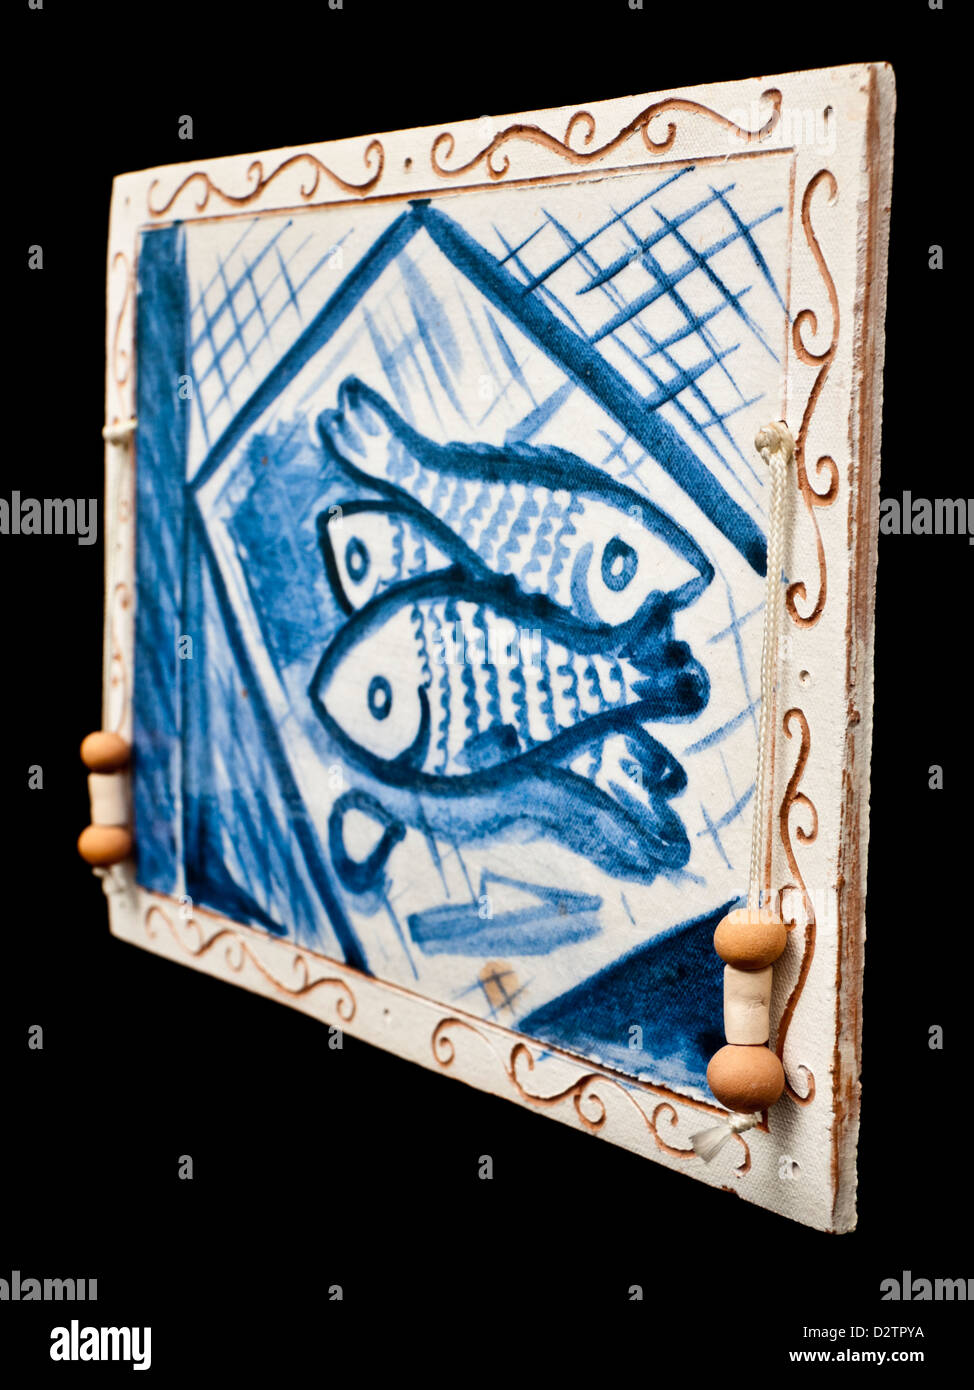 Vintage handmade African ceramic wall tile - Stock Image